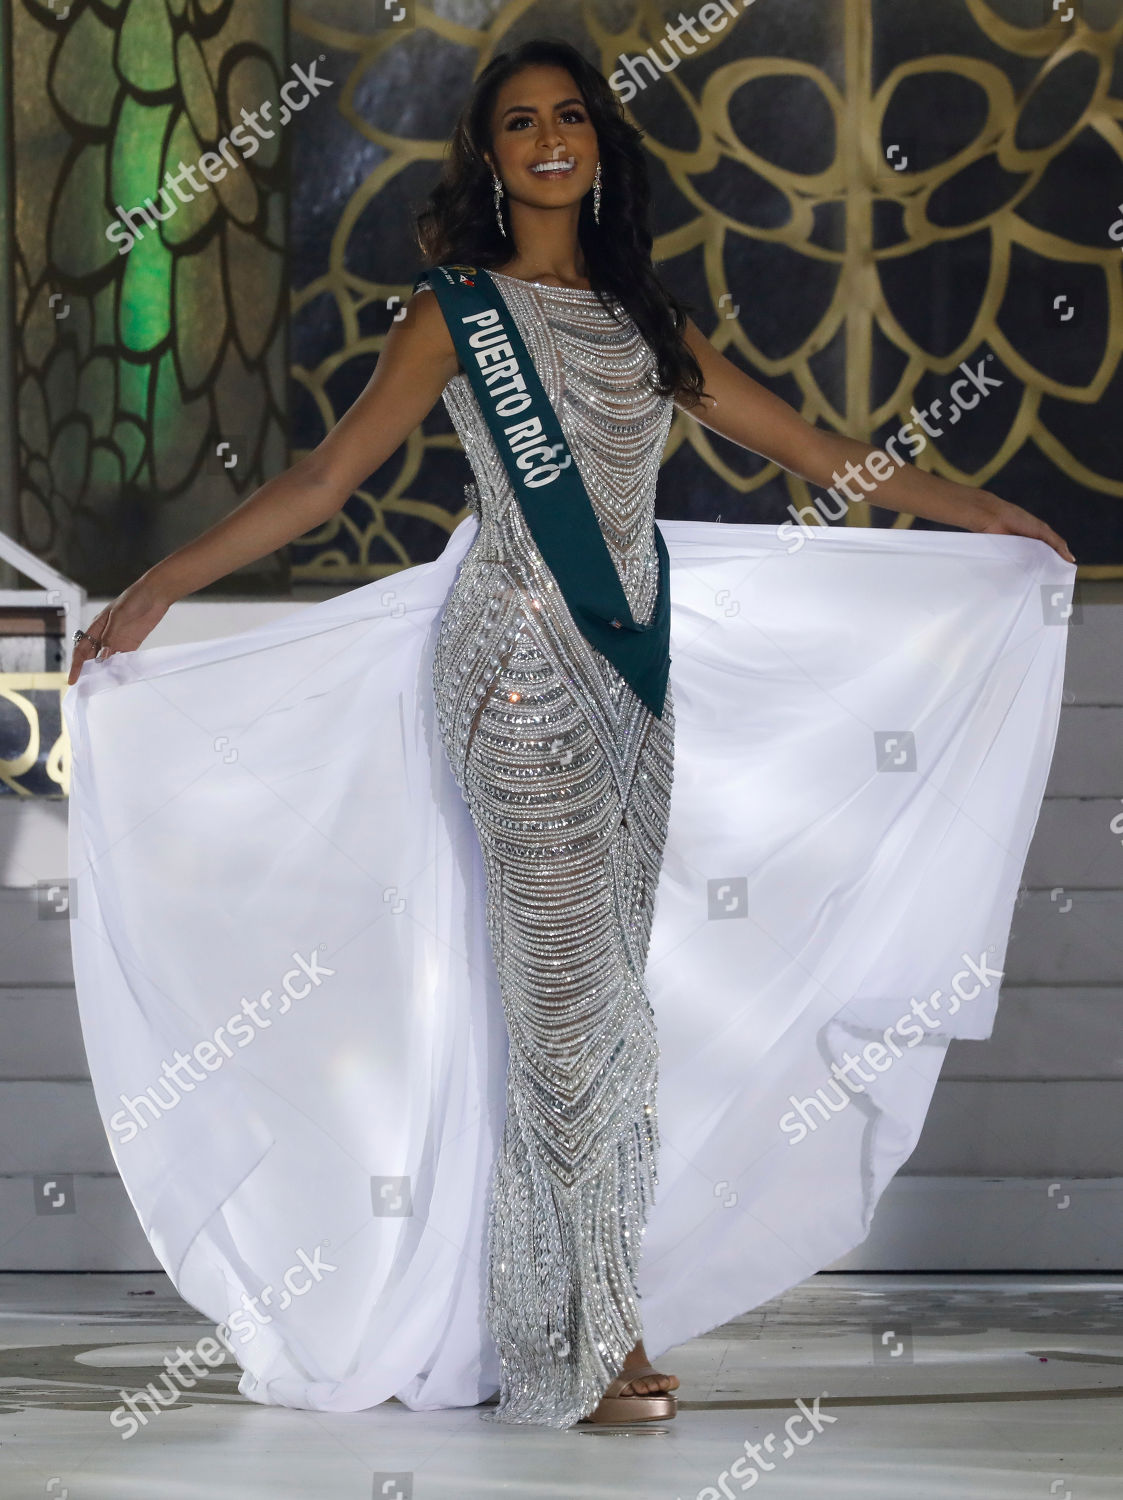 ★ MISS MANIA 2019 - Anntonia Porsild of Thailand !!! ★ Miss-earth-2019-beauty-pageant-in-manila-philippines-shutterstock-editorial-10456918g